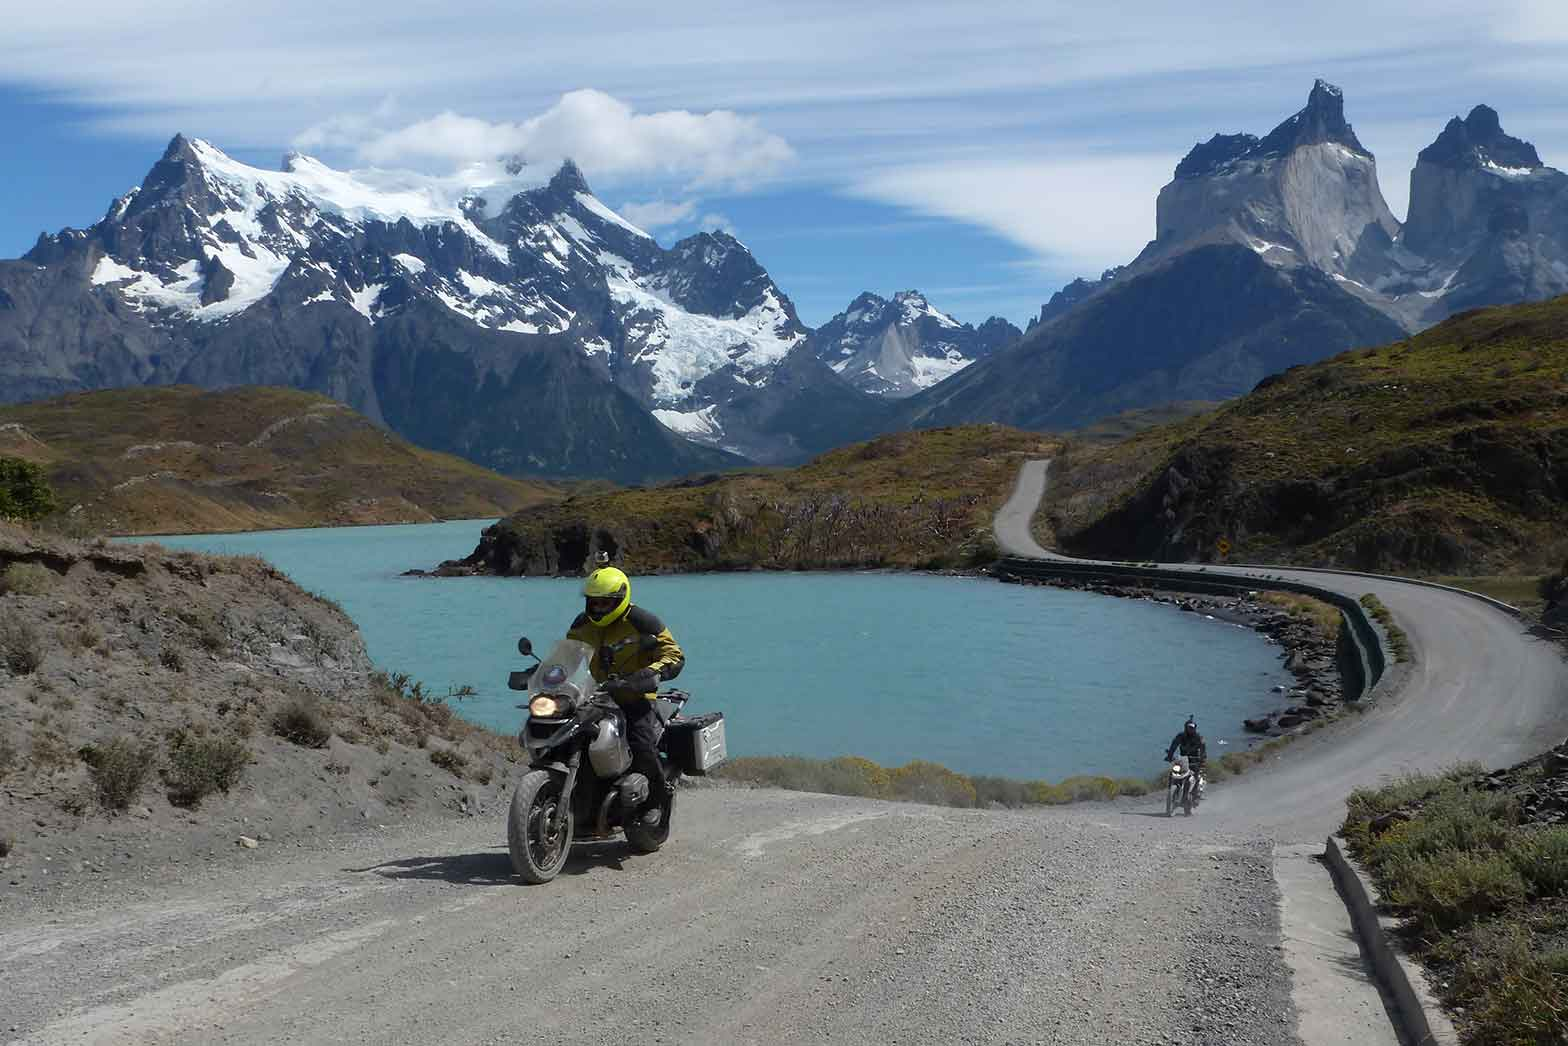 Leaving Torres del Paine, Ushuaia – Discover Patagonia